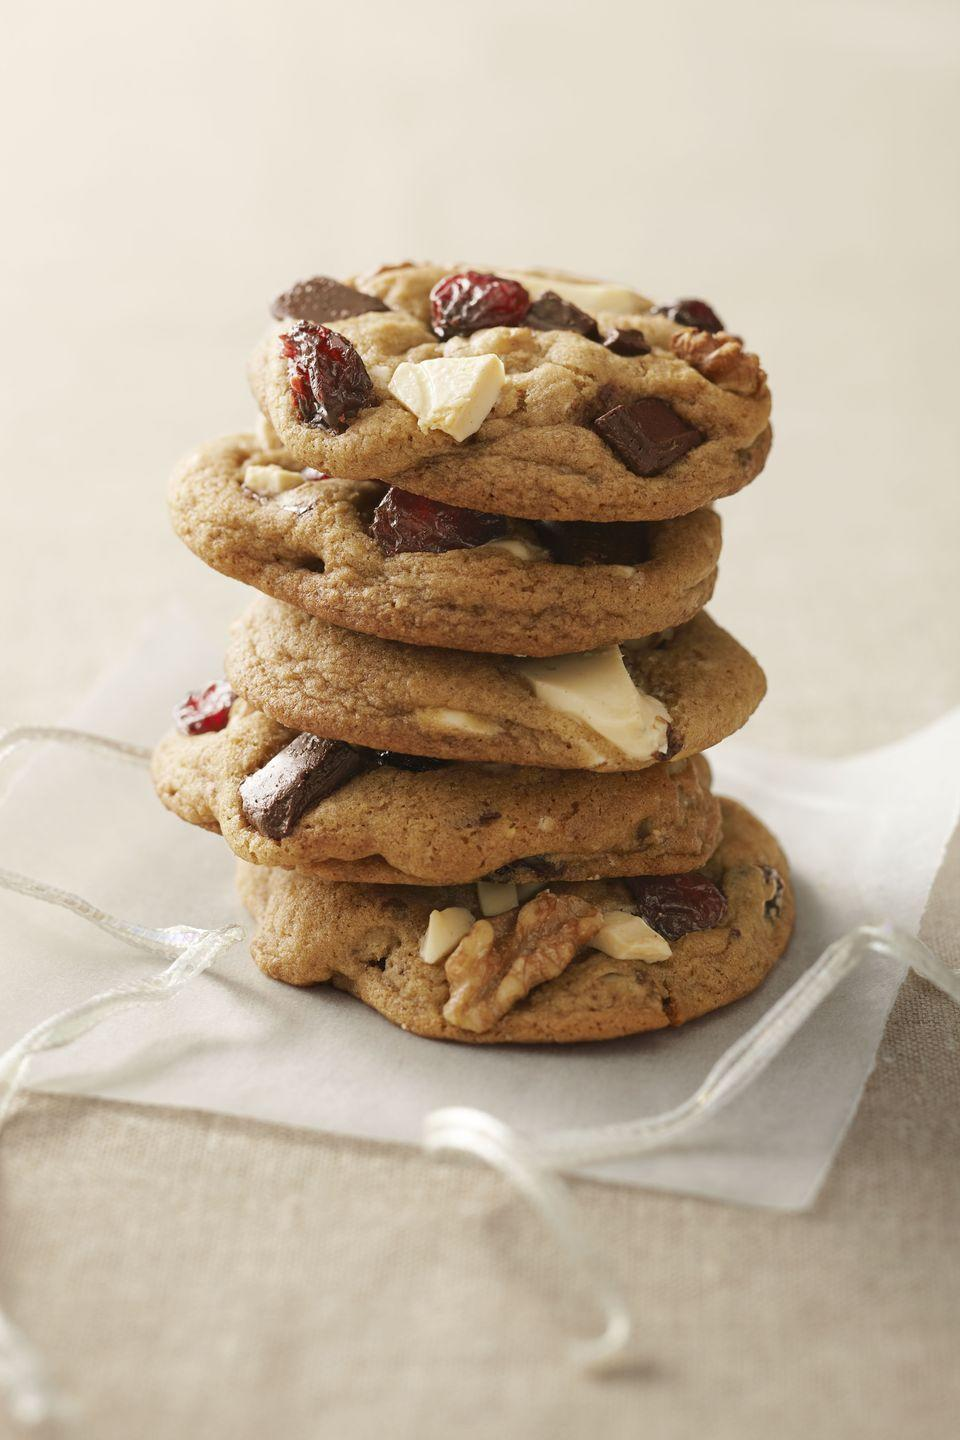 "<p>Chocolatey, gooey and accented with the tart taste of cranberries, we give these cookies our Thanksgiving stamp of approval.</p><p><a href=""https://www.goodhousekeeping.com/food-recipes/a11197/cranberry-chocolate-chunk-cookies-recipe-ghk1211/"" rel=""nofollow noopener"" target=""_blank"" data-ylk=""slk:Get the recipe for Cranberry Chocolate Chunk Cookies »"" class=""link rapid-noclick-resp""><em>Get the recipe for Cranberry Chocolate Chunk Cookies »</em></a></p>"